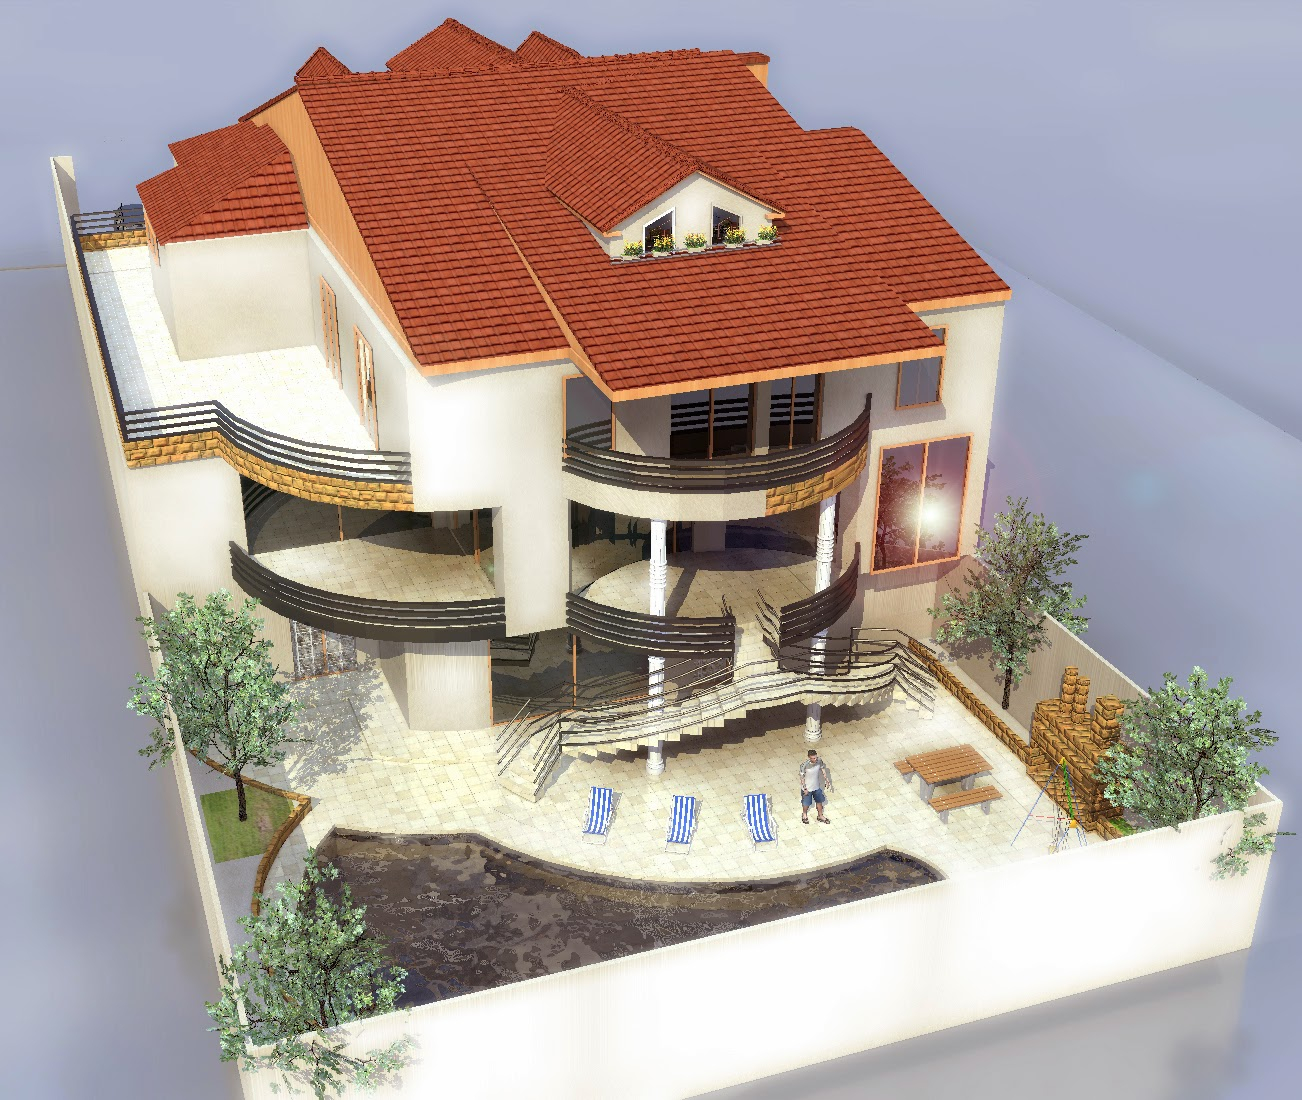 Plan architecte maison gratuit for Creer plan maison 3d